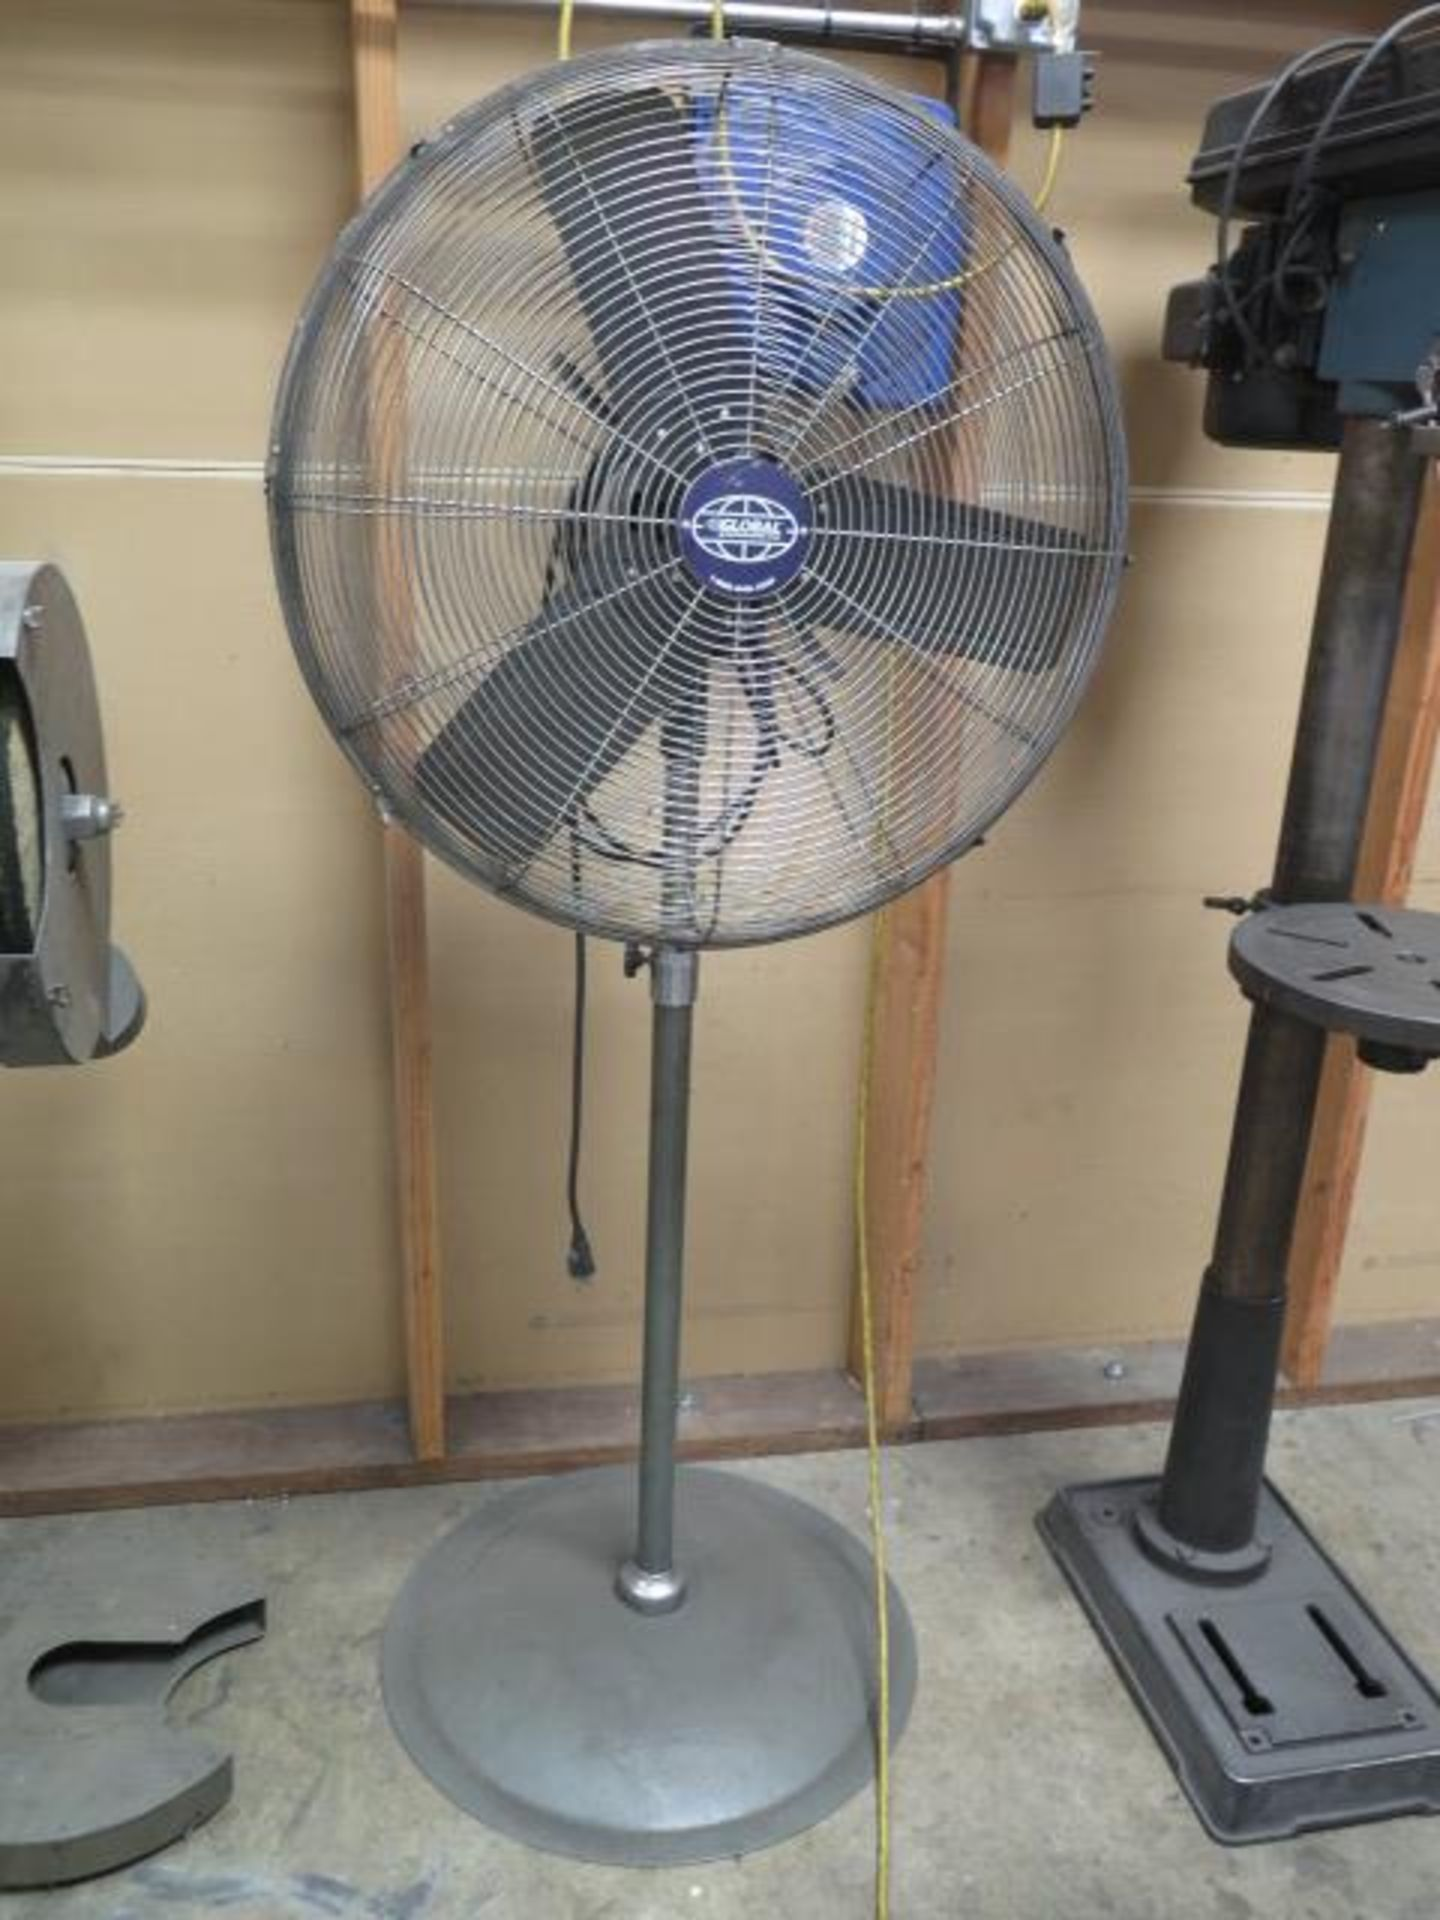 Shop Fans (2) (SOLD AS-IS - NO WARRANTY) - Image 2 of 3